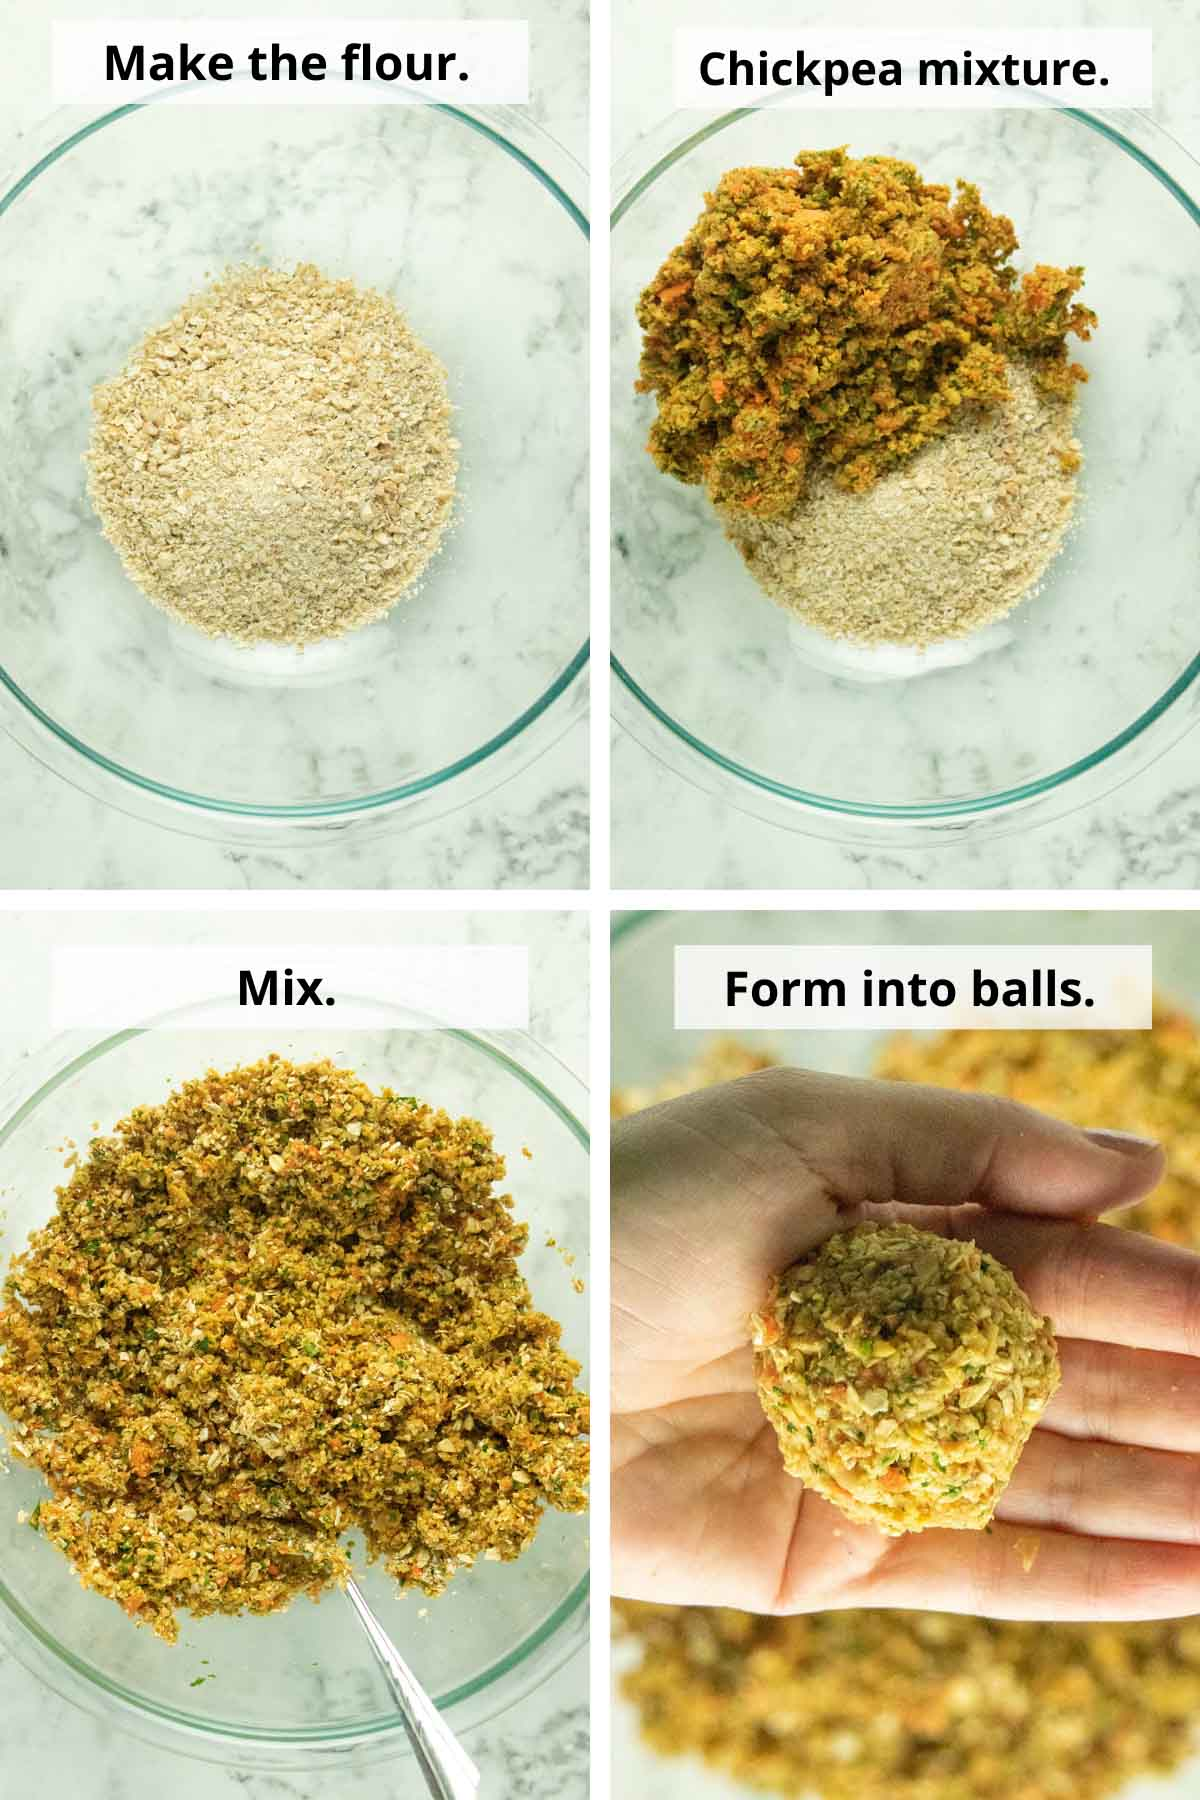 collage showing the cashew-oat flour, mixing it with the chickpea mince, and making the falafel balls